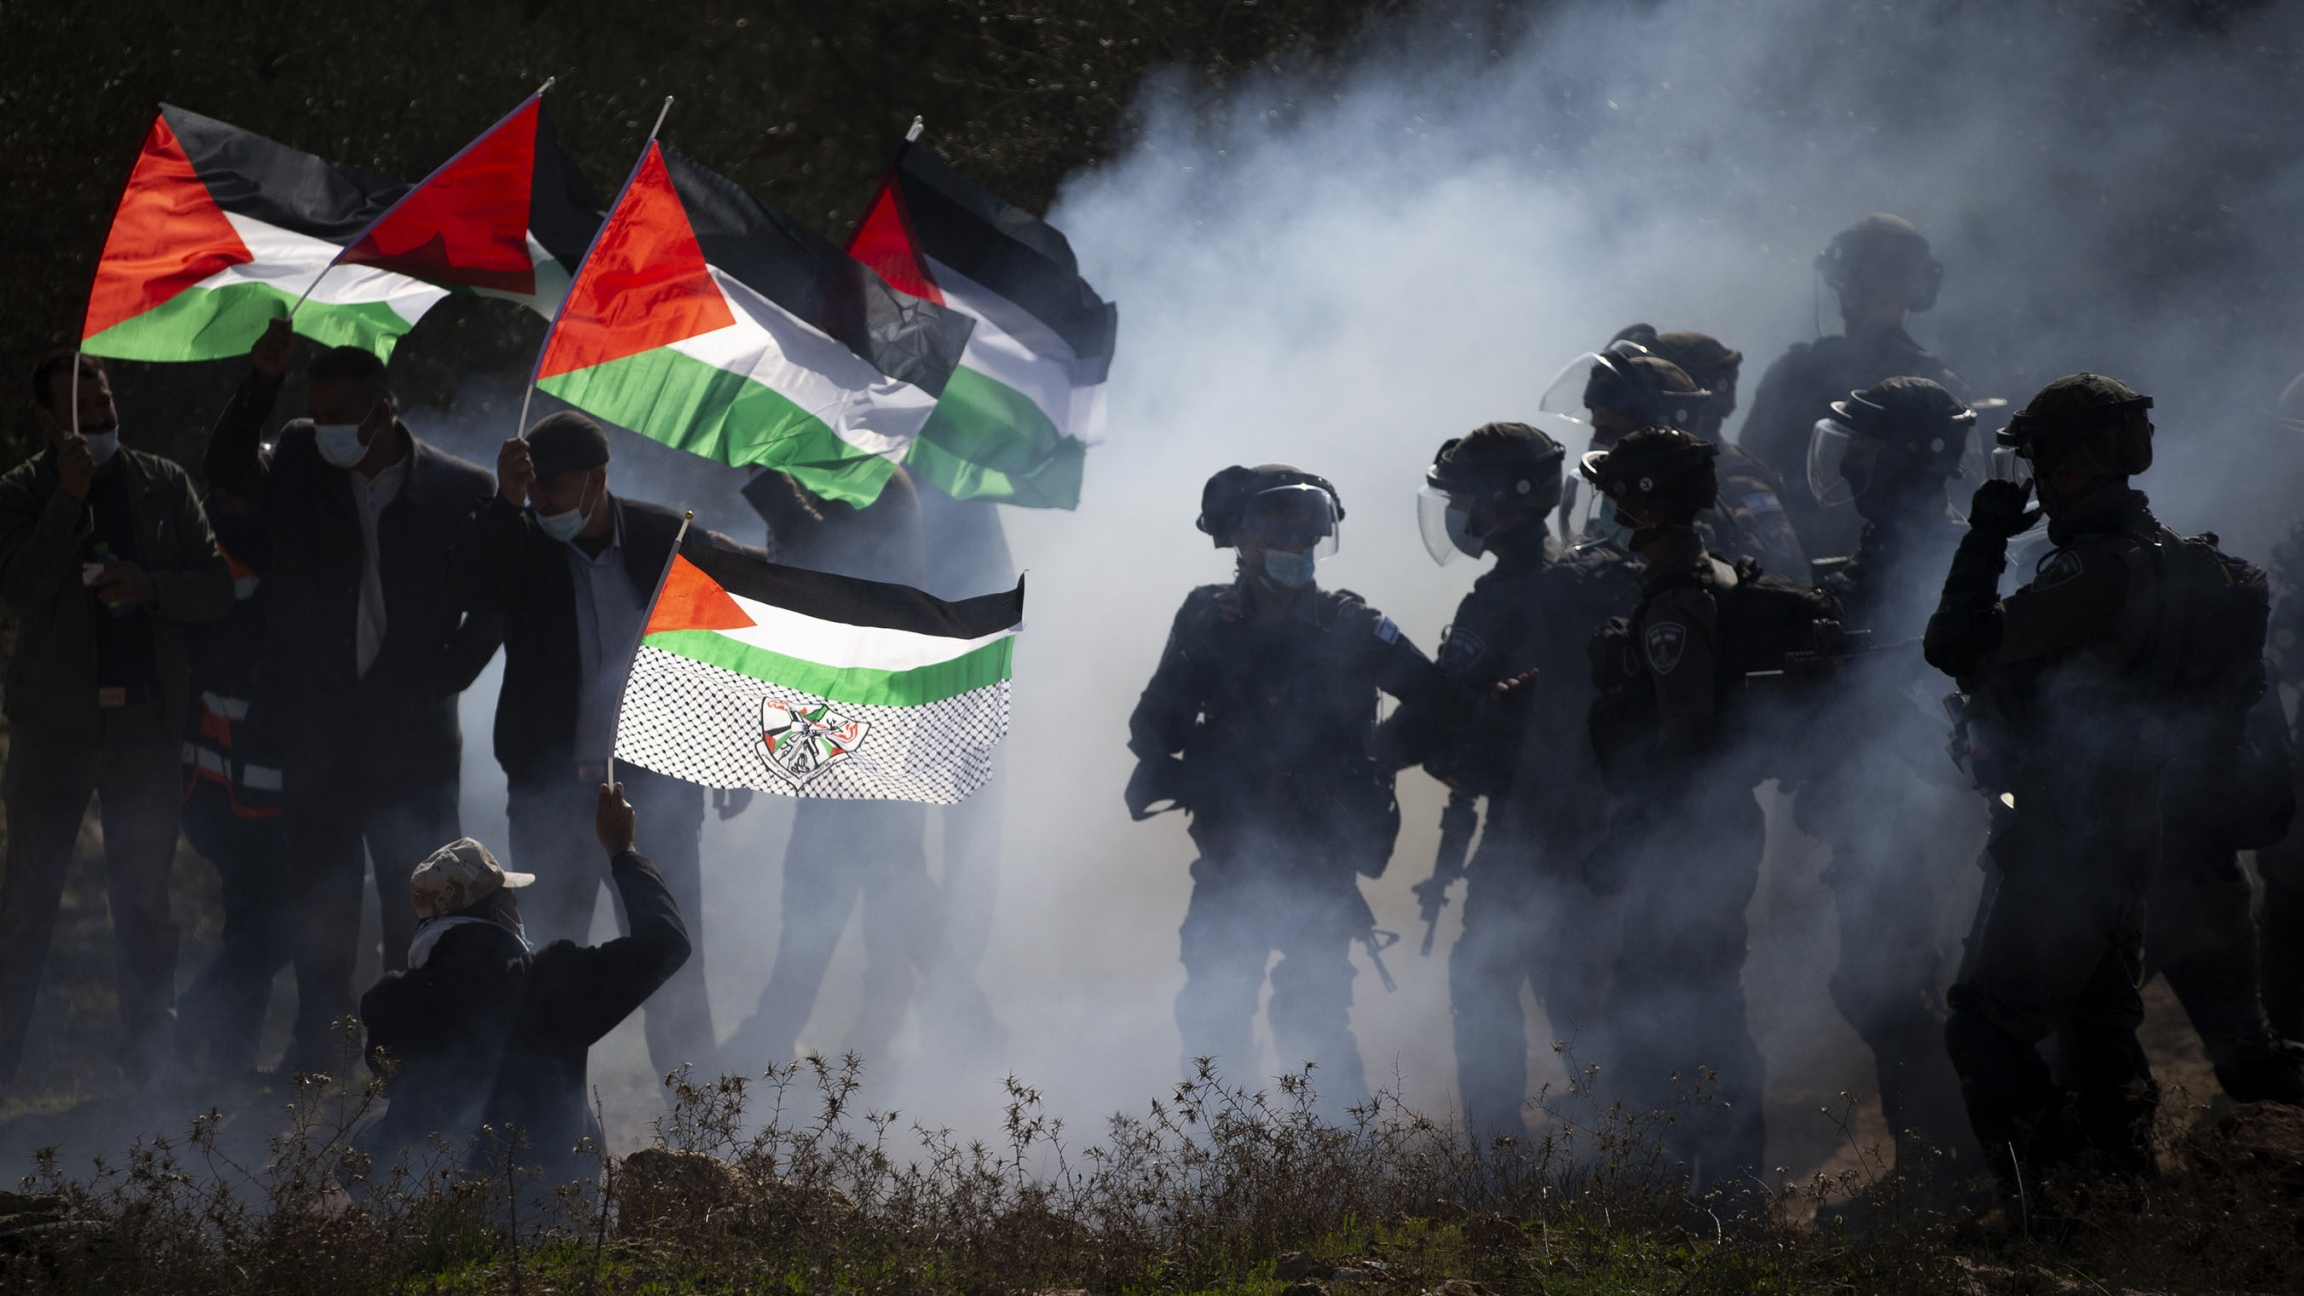 Israeli border police officers and Palestinians clash during a protest against the expansion of Israeli Jewish settlements near the West Bank town of Salfit.